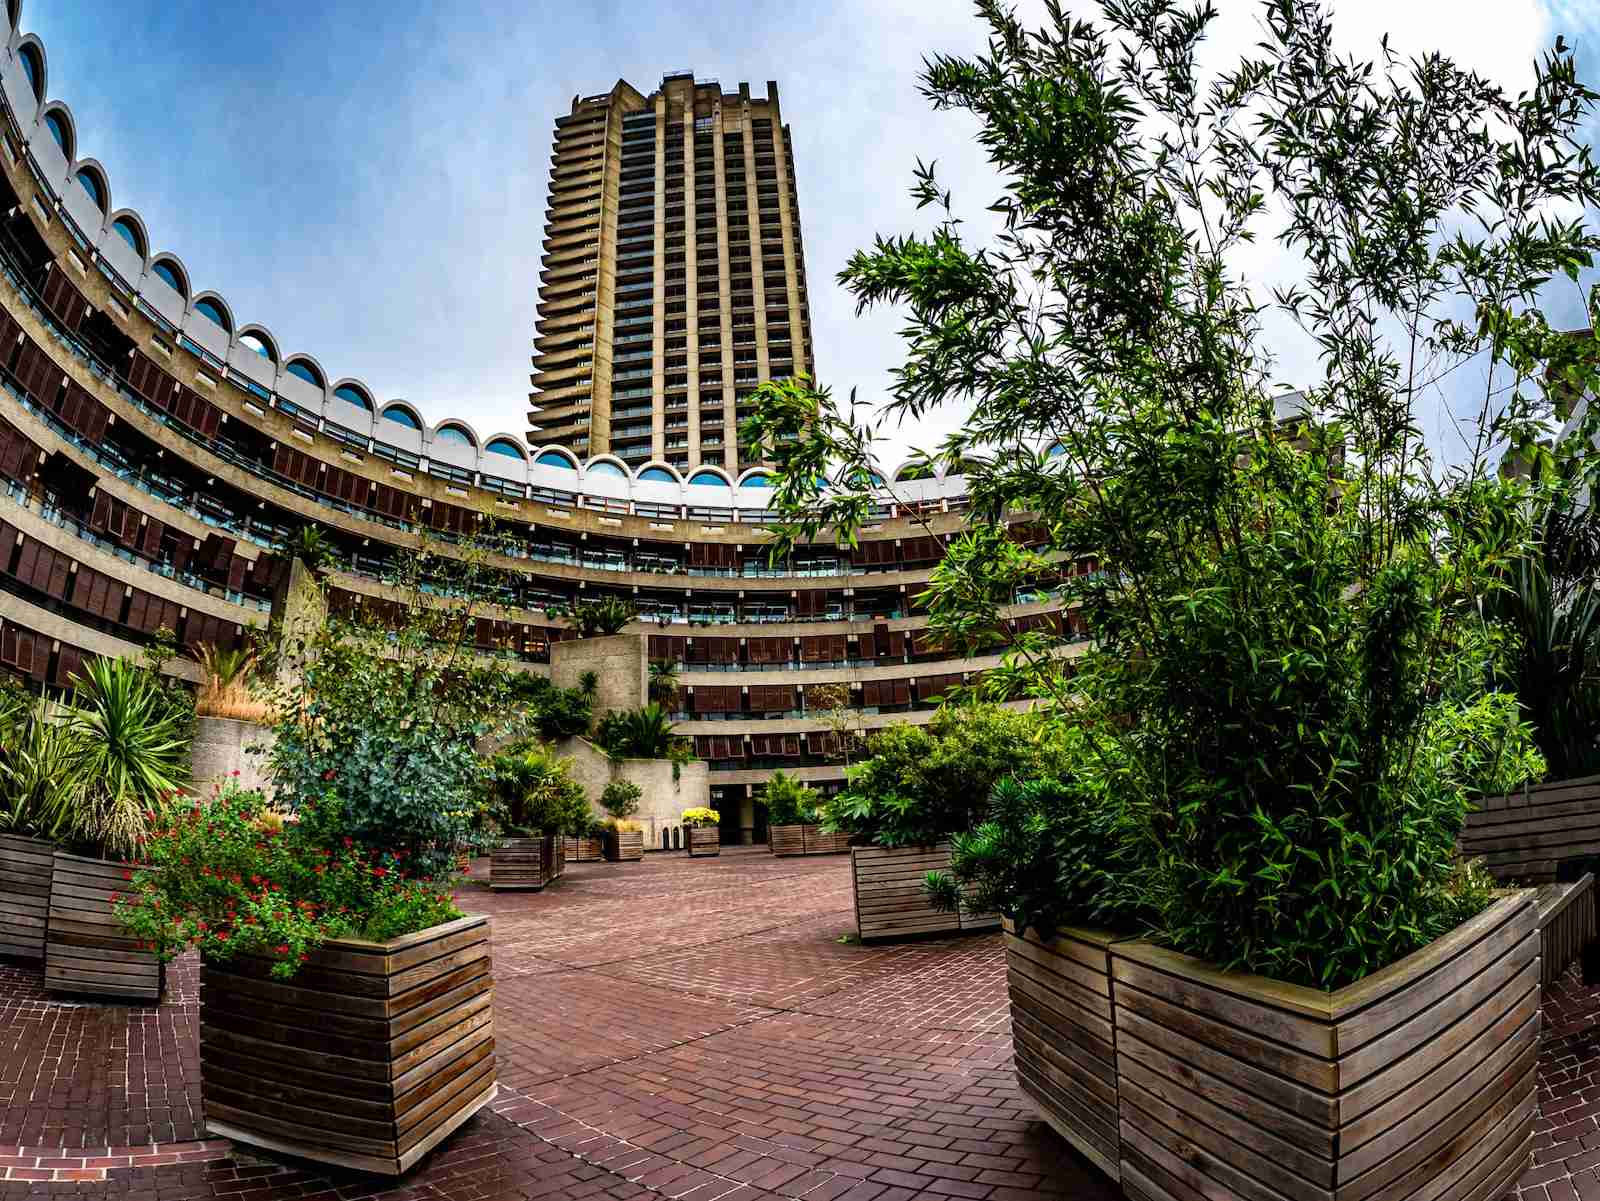 The Barbican Conservatory. (Photo by Cristian Mircea Balate/Getty Images)